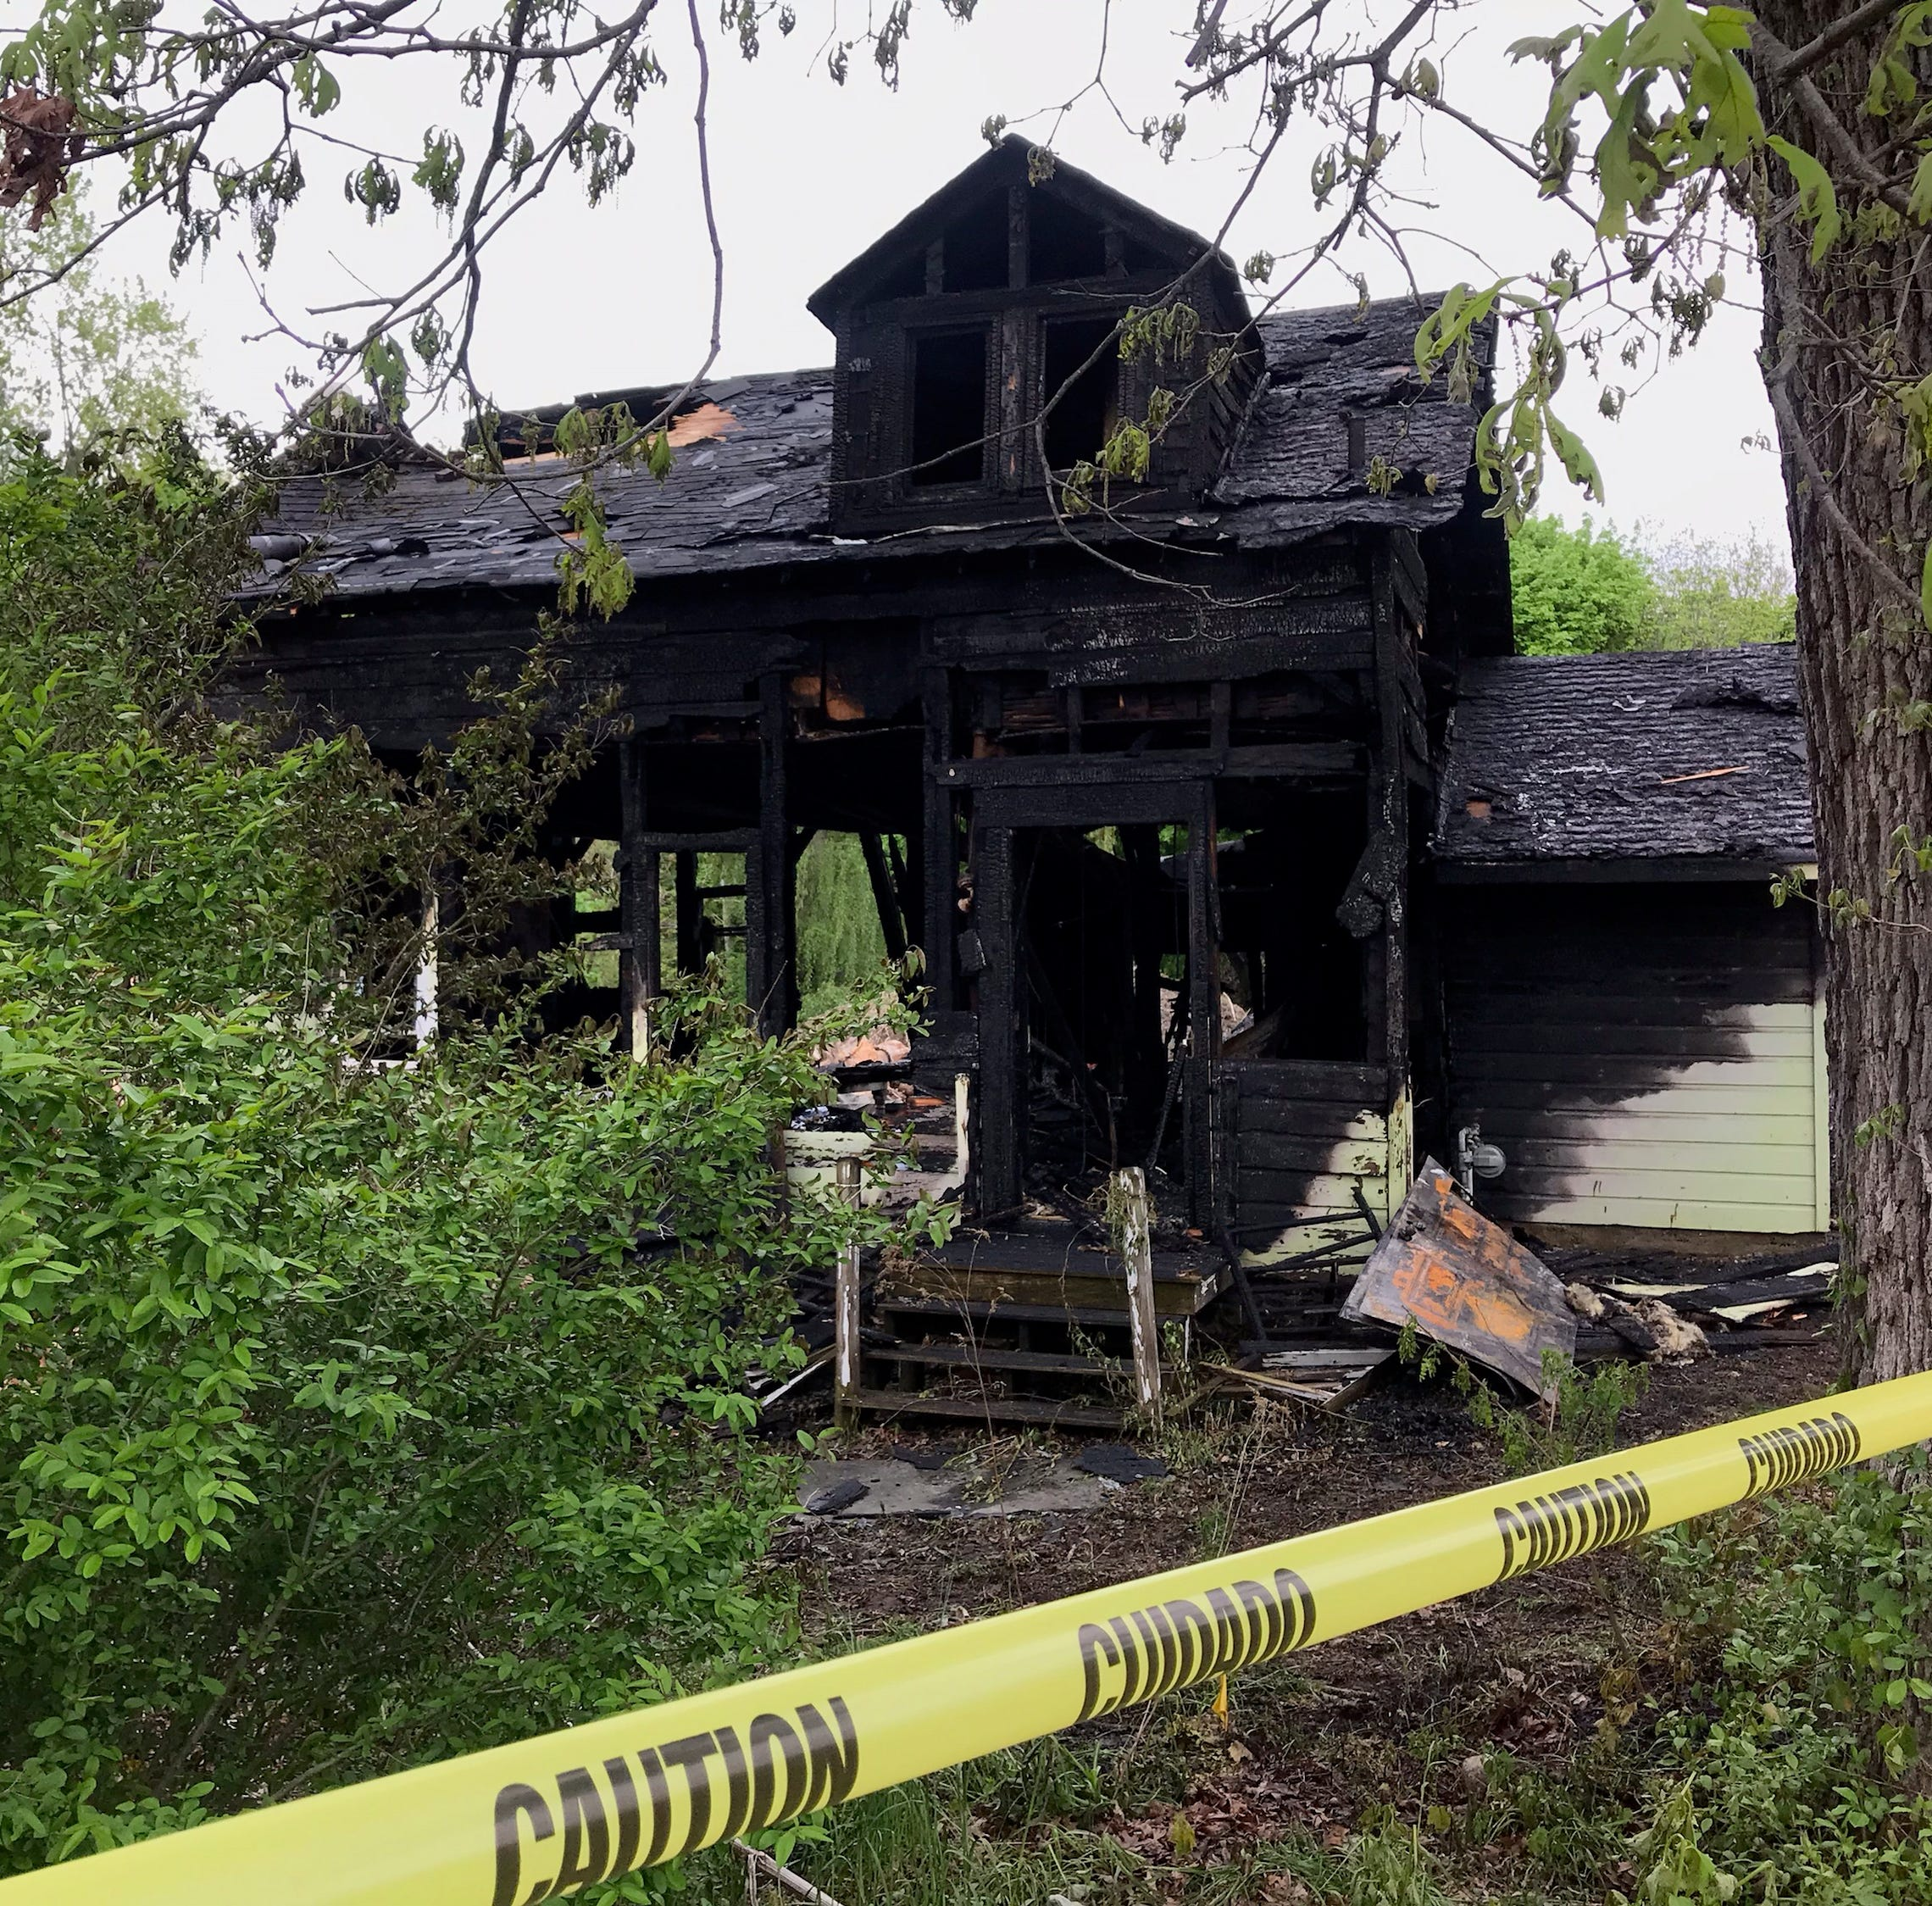 Fire destroys vacant Fishkill house built in 1700s: chief